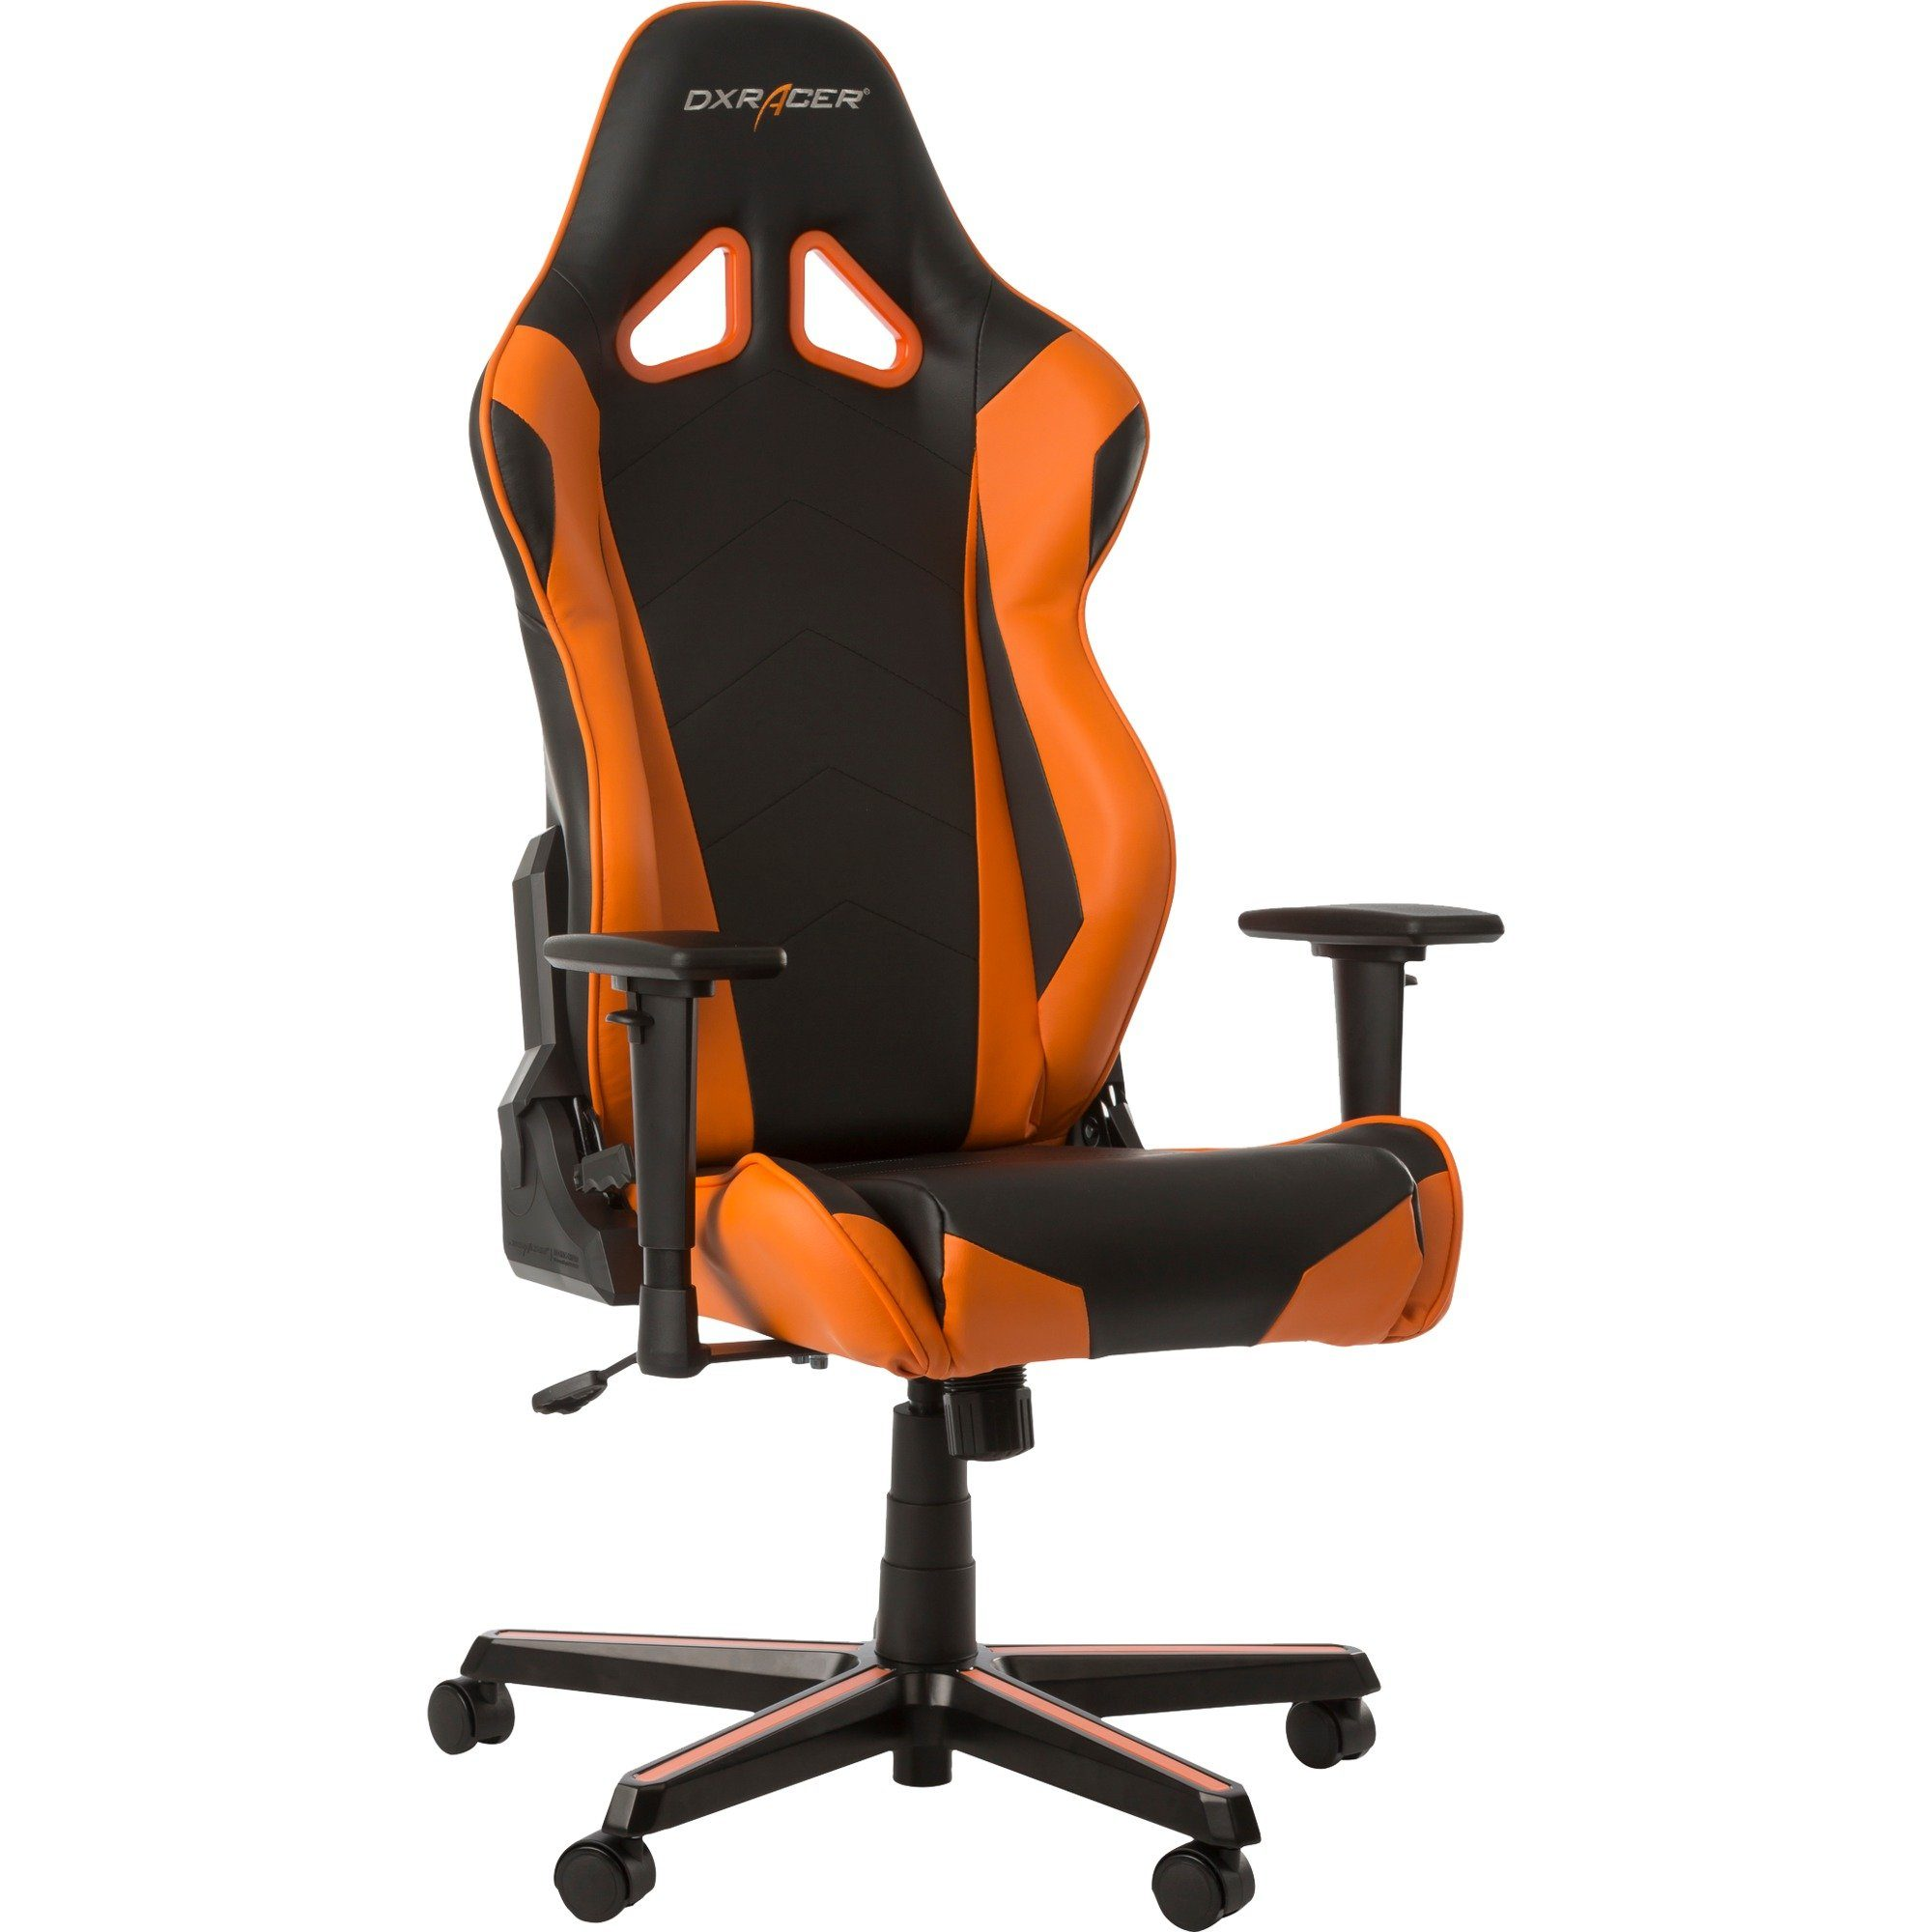 DXRacer Spielsitz »Racing Gaming Chair (OH/RZ0/NO)«